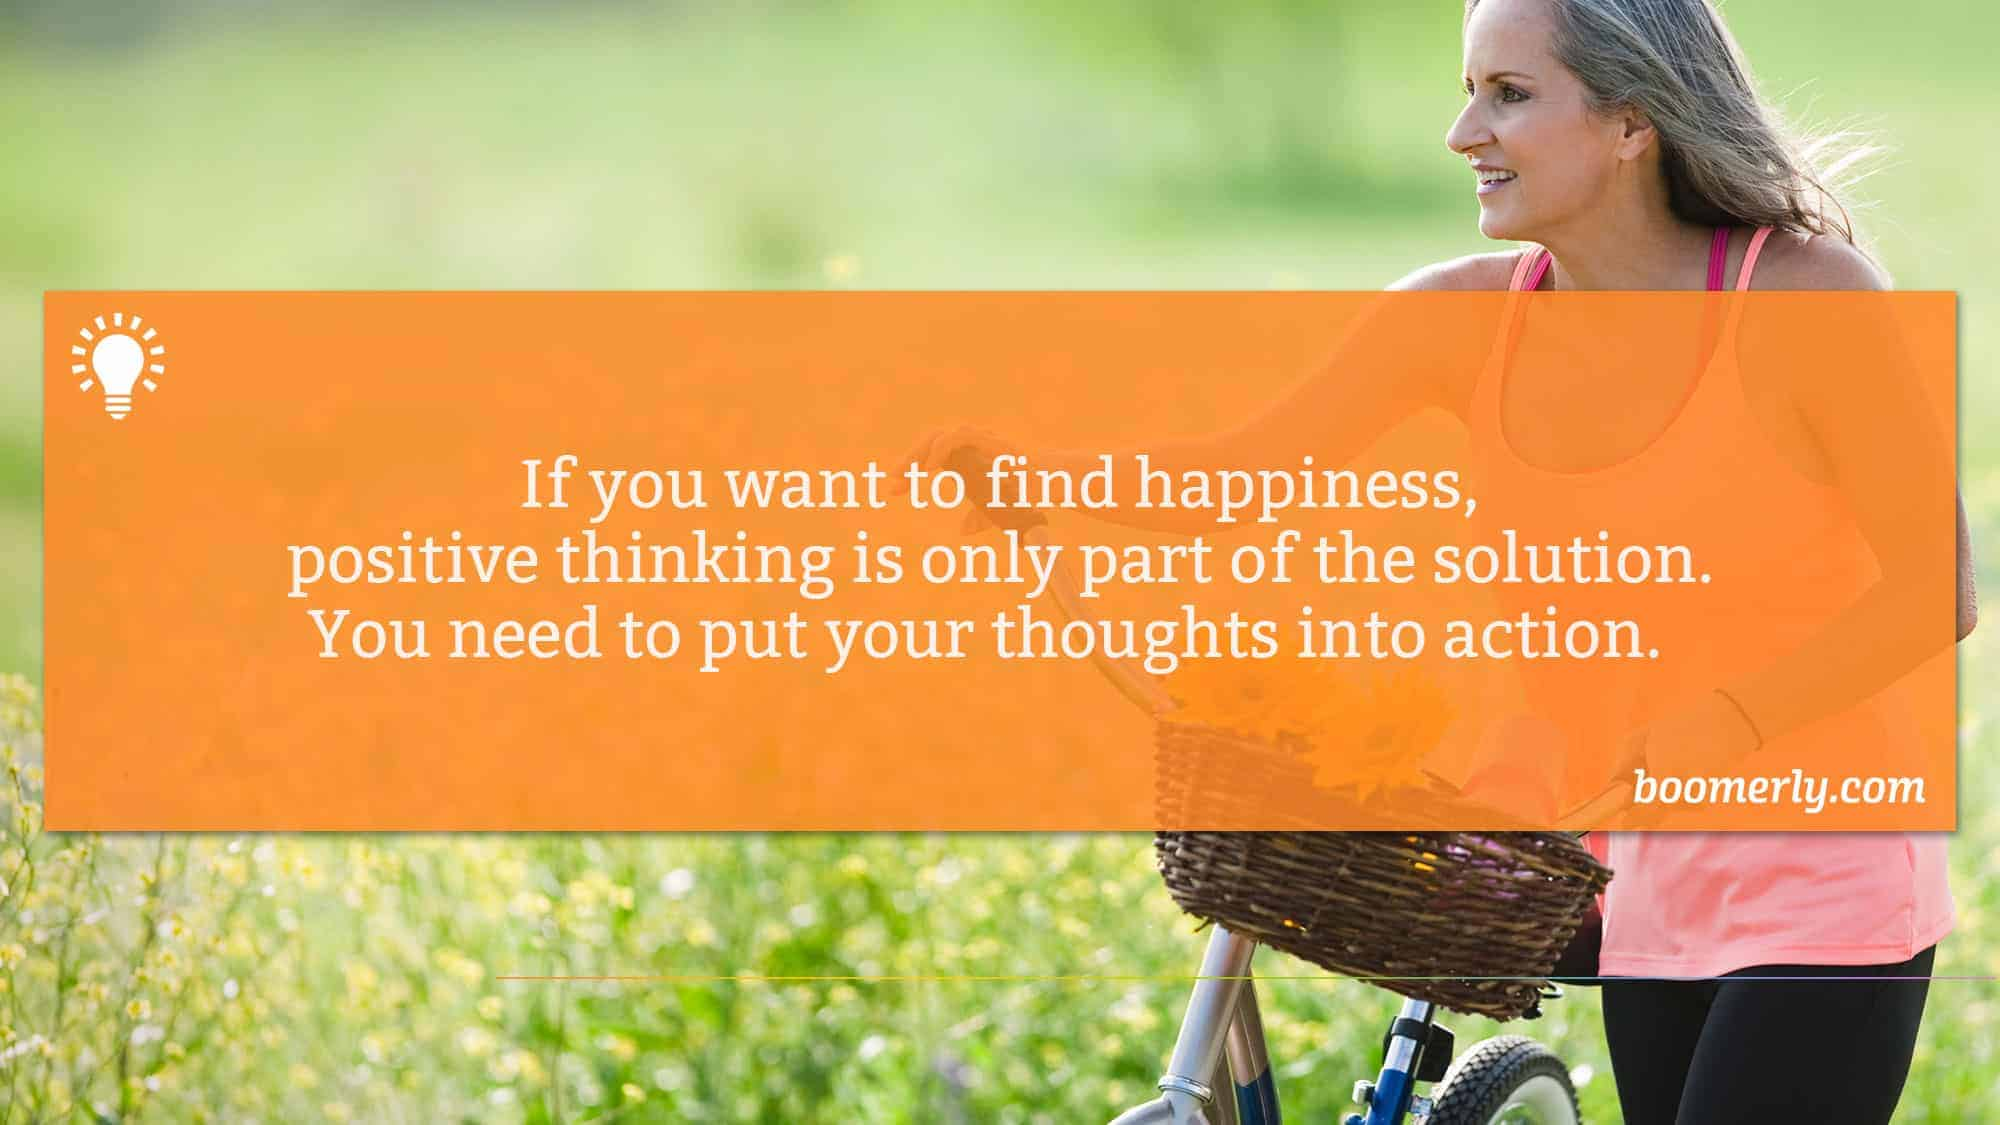 Boomerly.com - If you want to find happiness, positive thinking is only part of the solution. You need to put your thoughts into action.